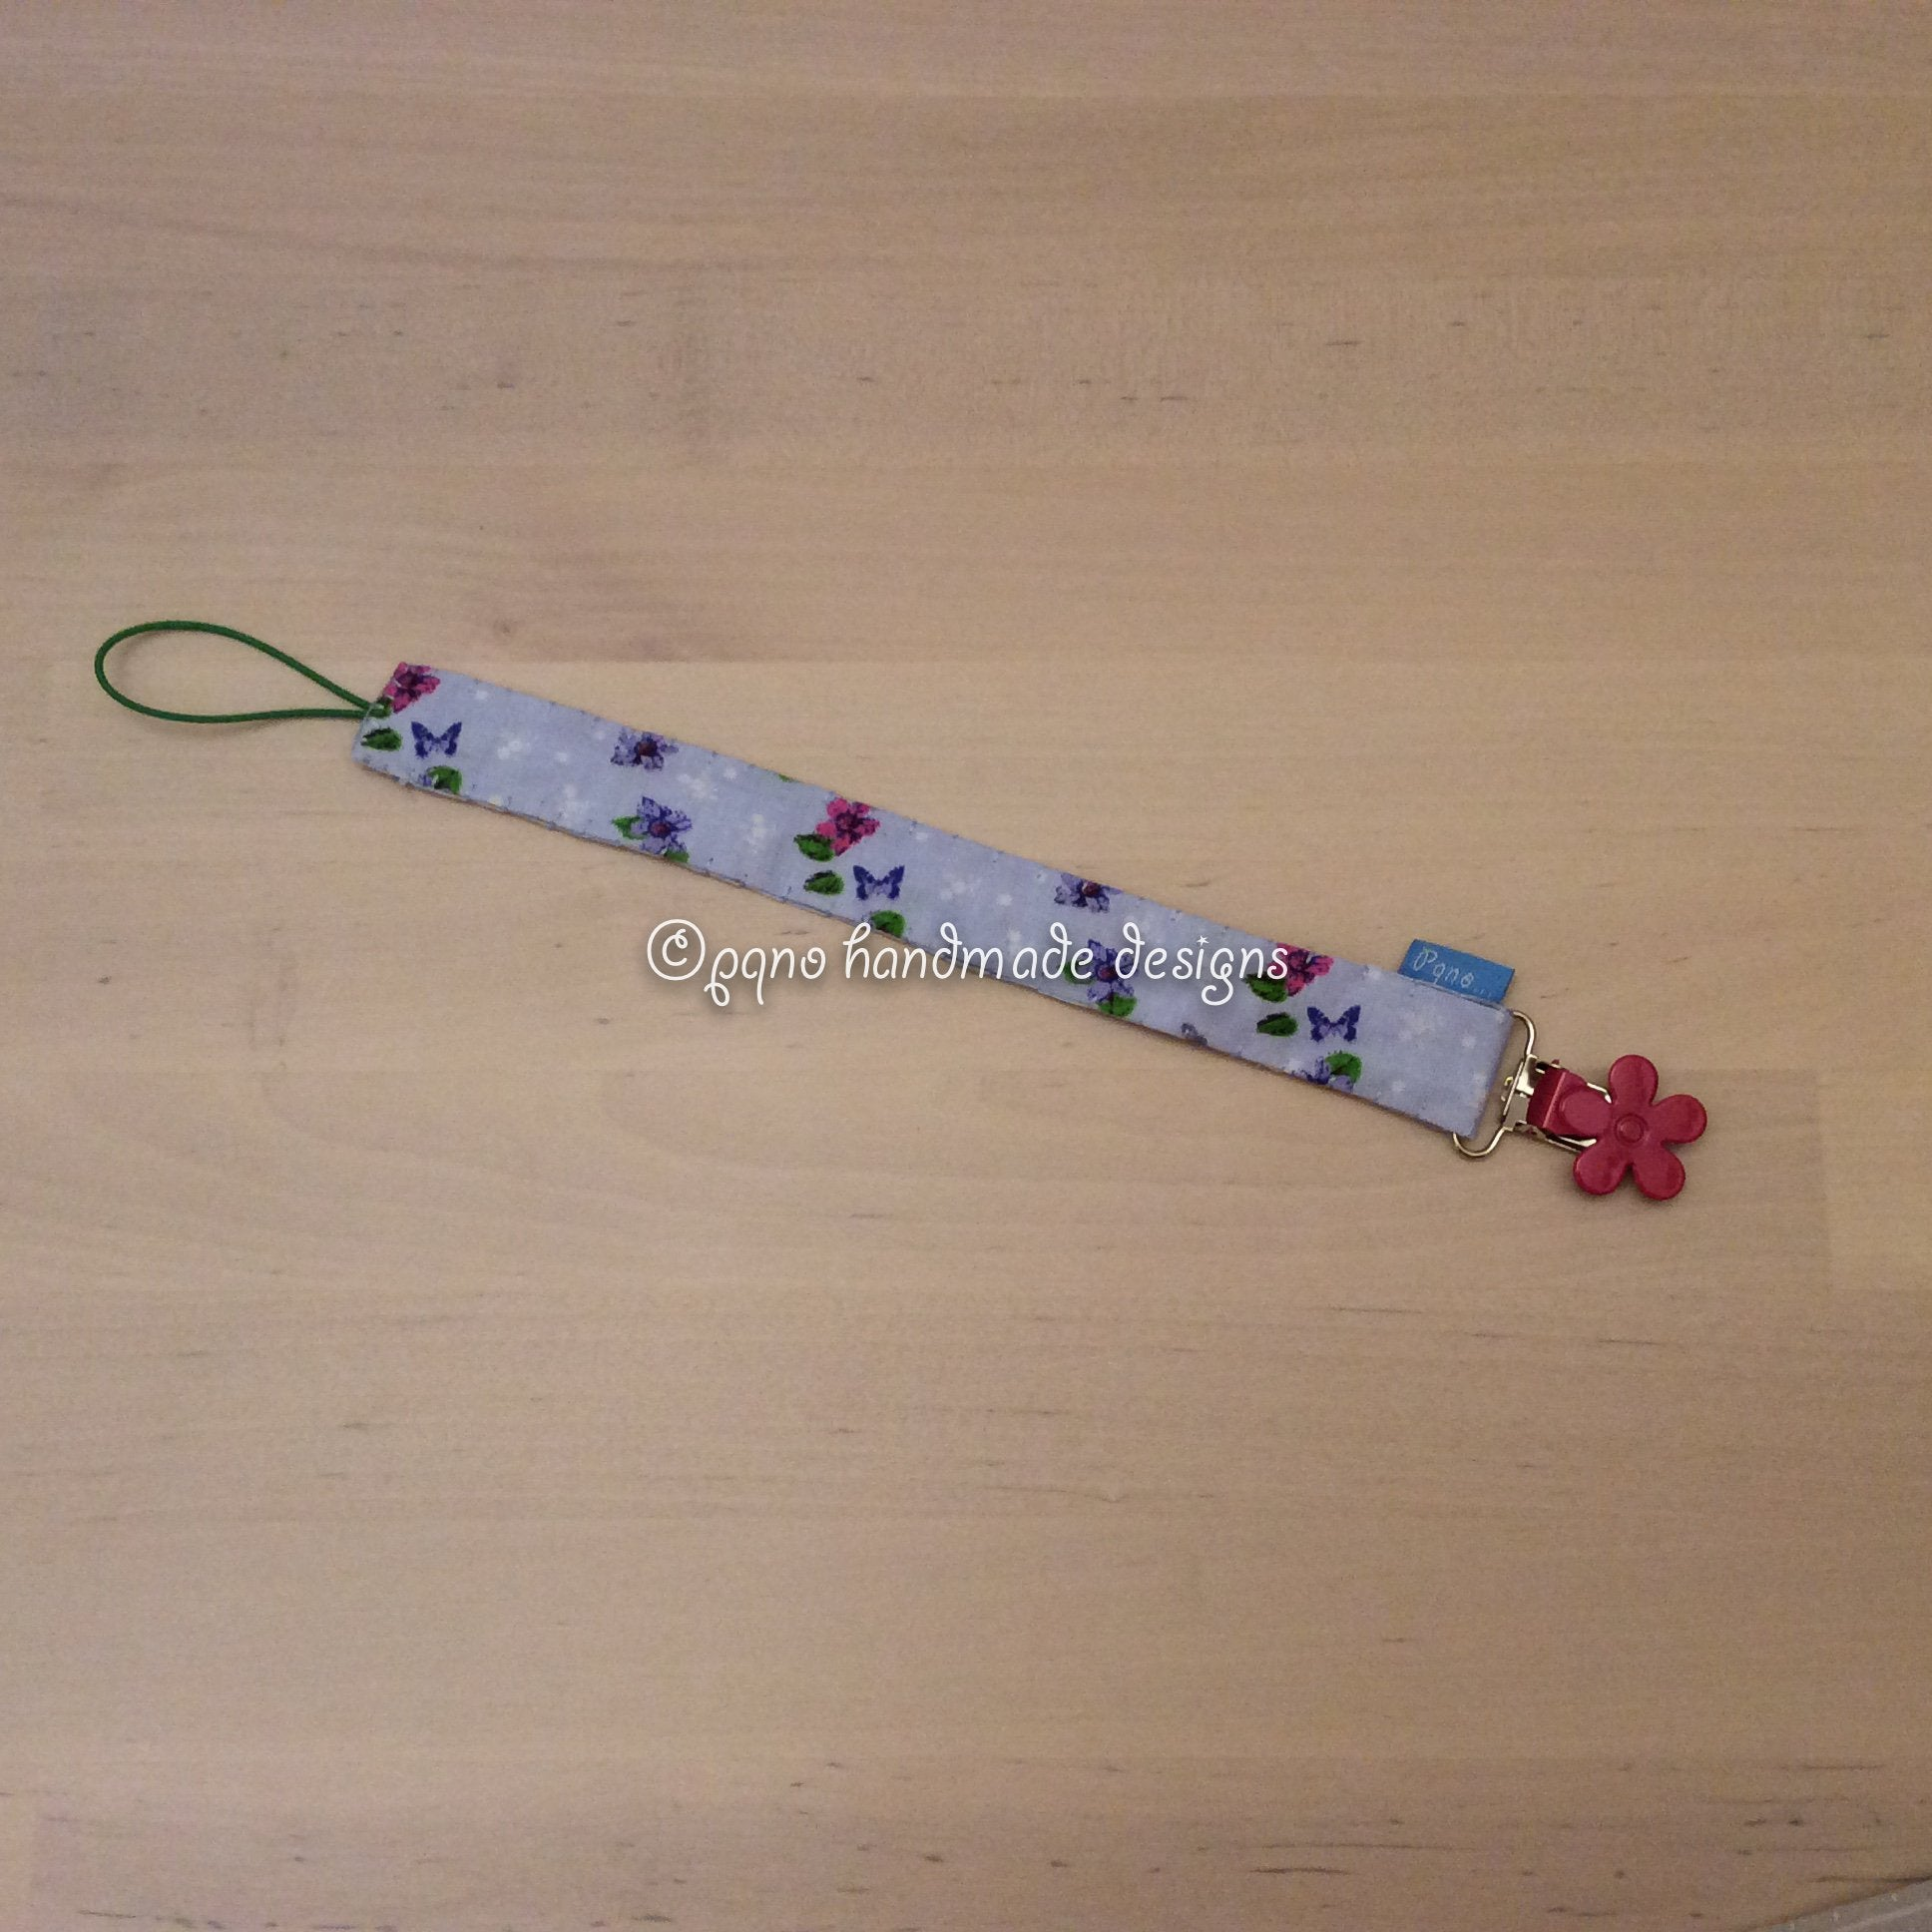 Chupetero flores & mariposas - Cinta flors & papallones - Flowers & butterflies strap - Blomster & sommerfugler stropp